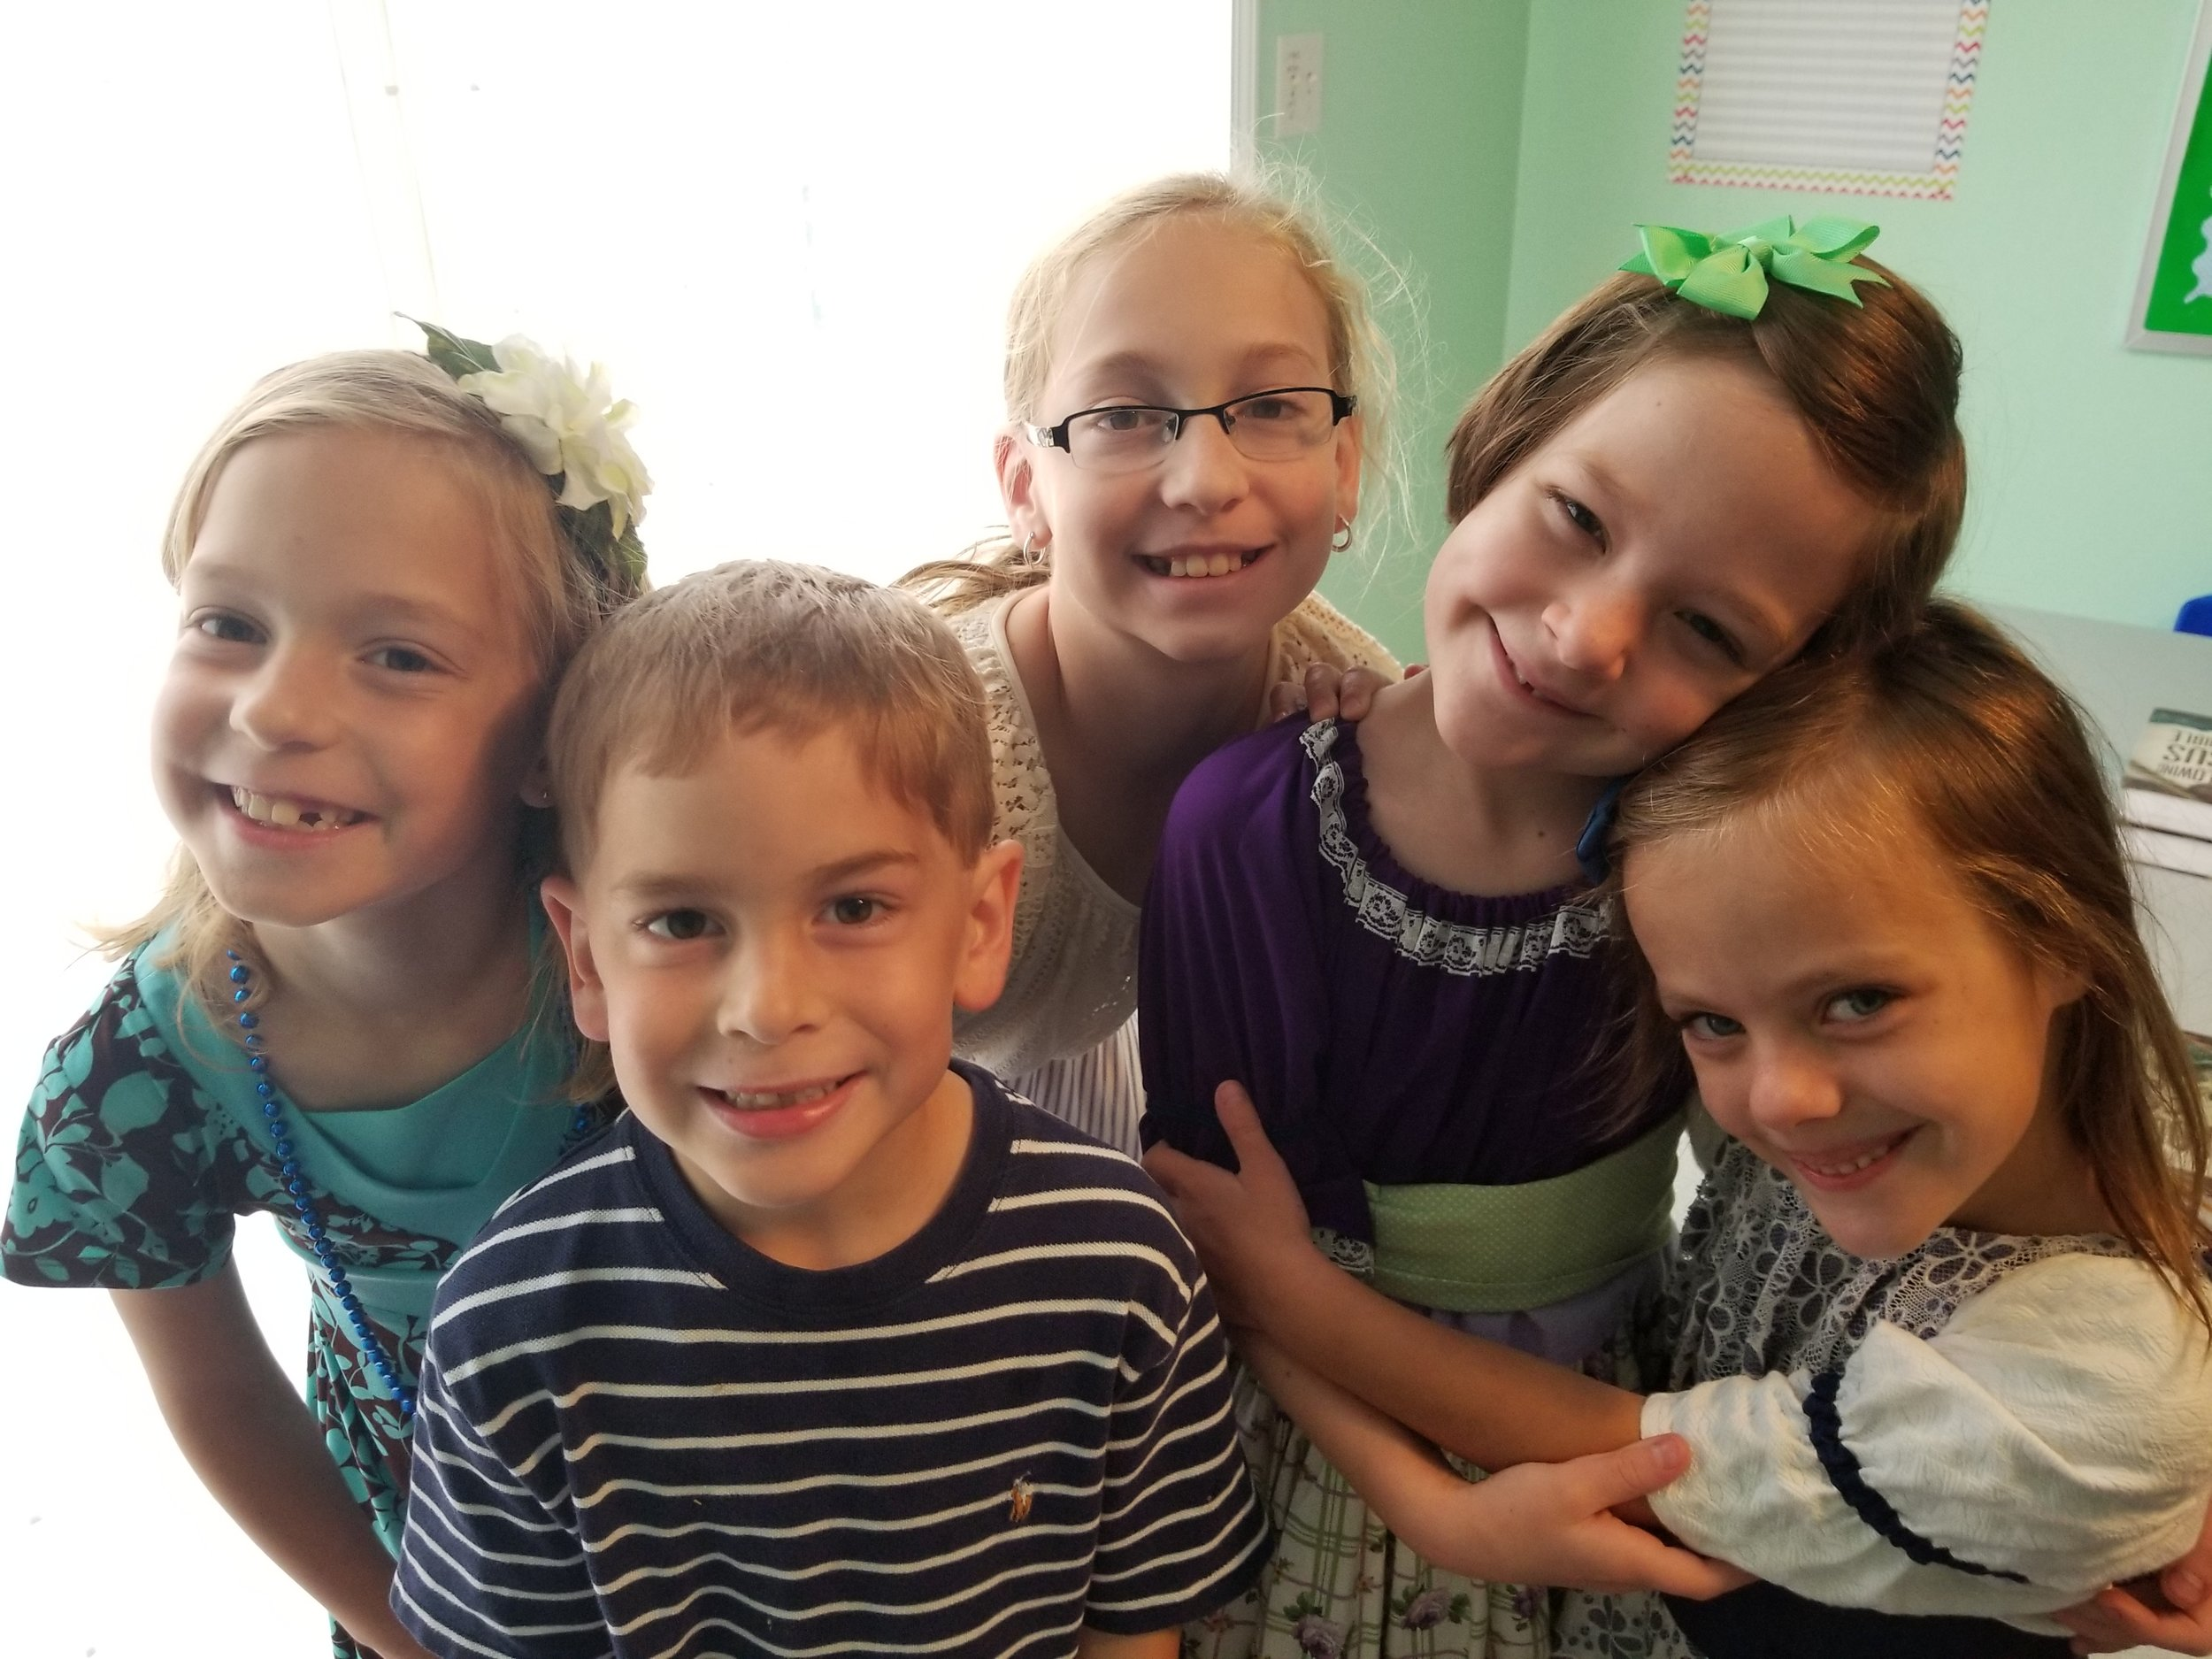 Children's Church - (Age 3 through Kindergarten)Halfway through Worship, an announcement will be made dismissing children. A teacher will be standing in the back to walk children to Children's Church. Kids will have a Bible lesson, craft, snack, and playtime.First time visitors: Parents, please walk with your child to the Children's Church room to check-in your child so you will know where to go after church for pick-up. Visiting children will only be released to the person who dropped them off.